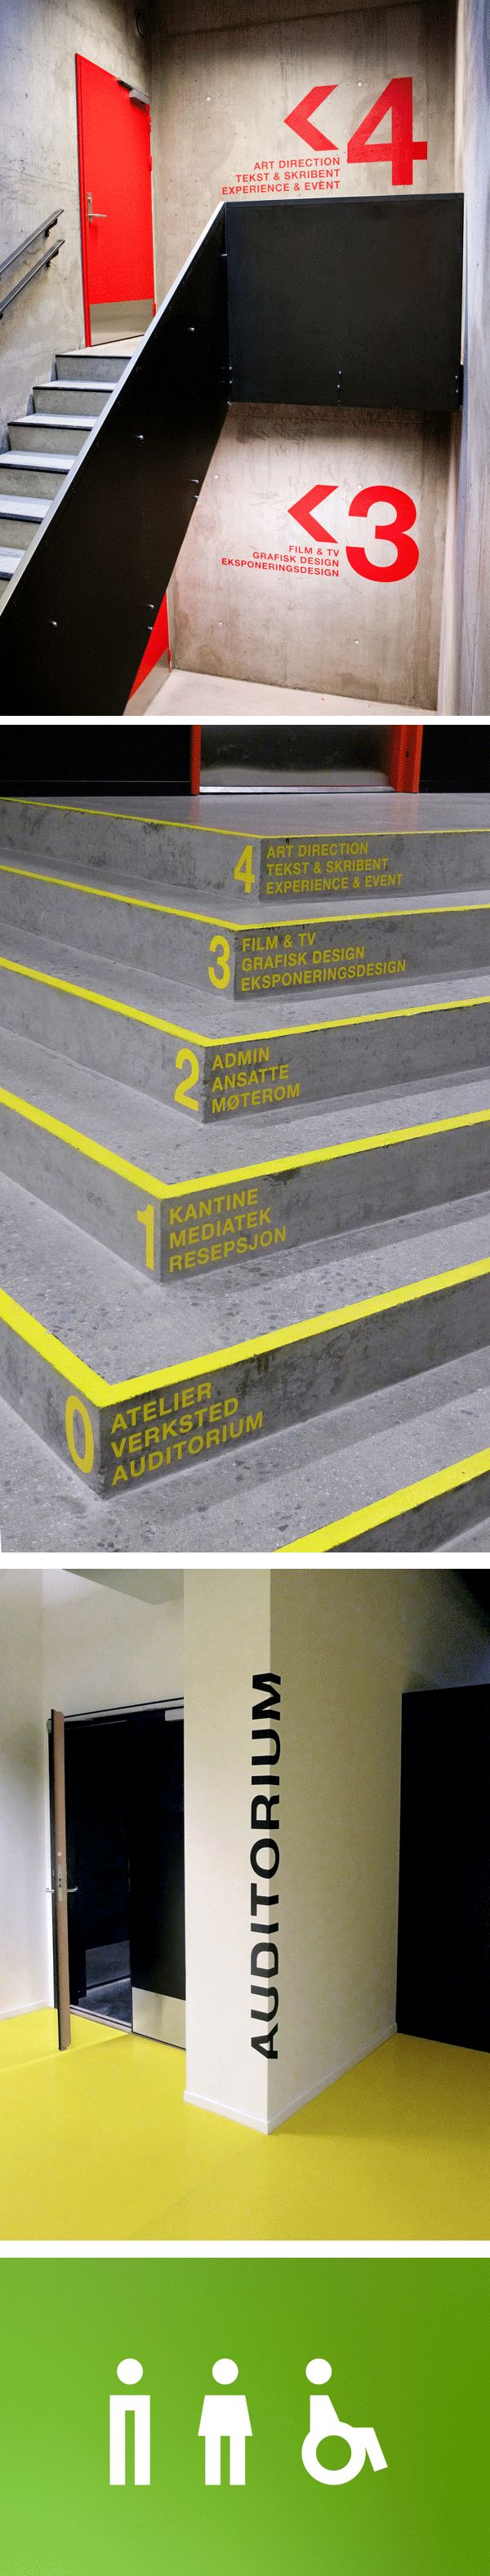 Wayfinding Westerdals - Icon design                                                                                                                                                                                 More